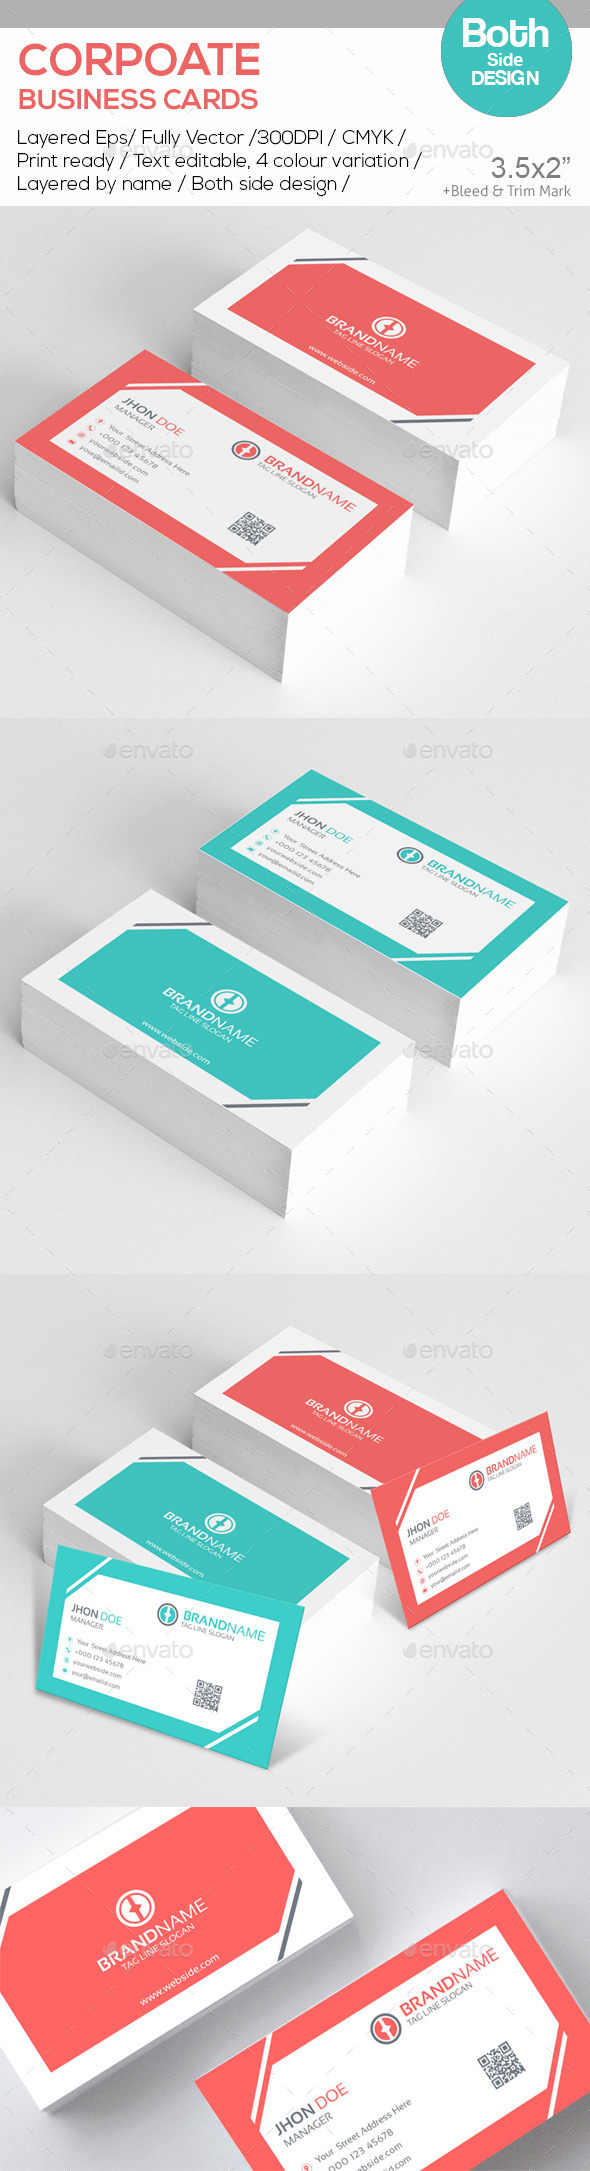 GraphicRiver BRAND NAME Corporate Business Cards 10582383